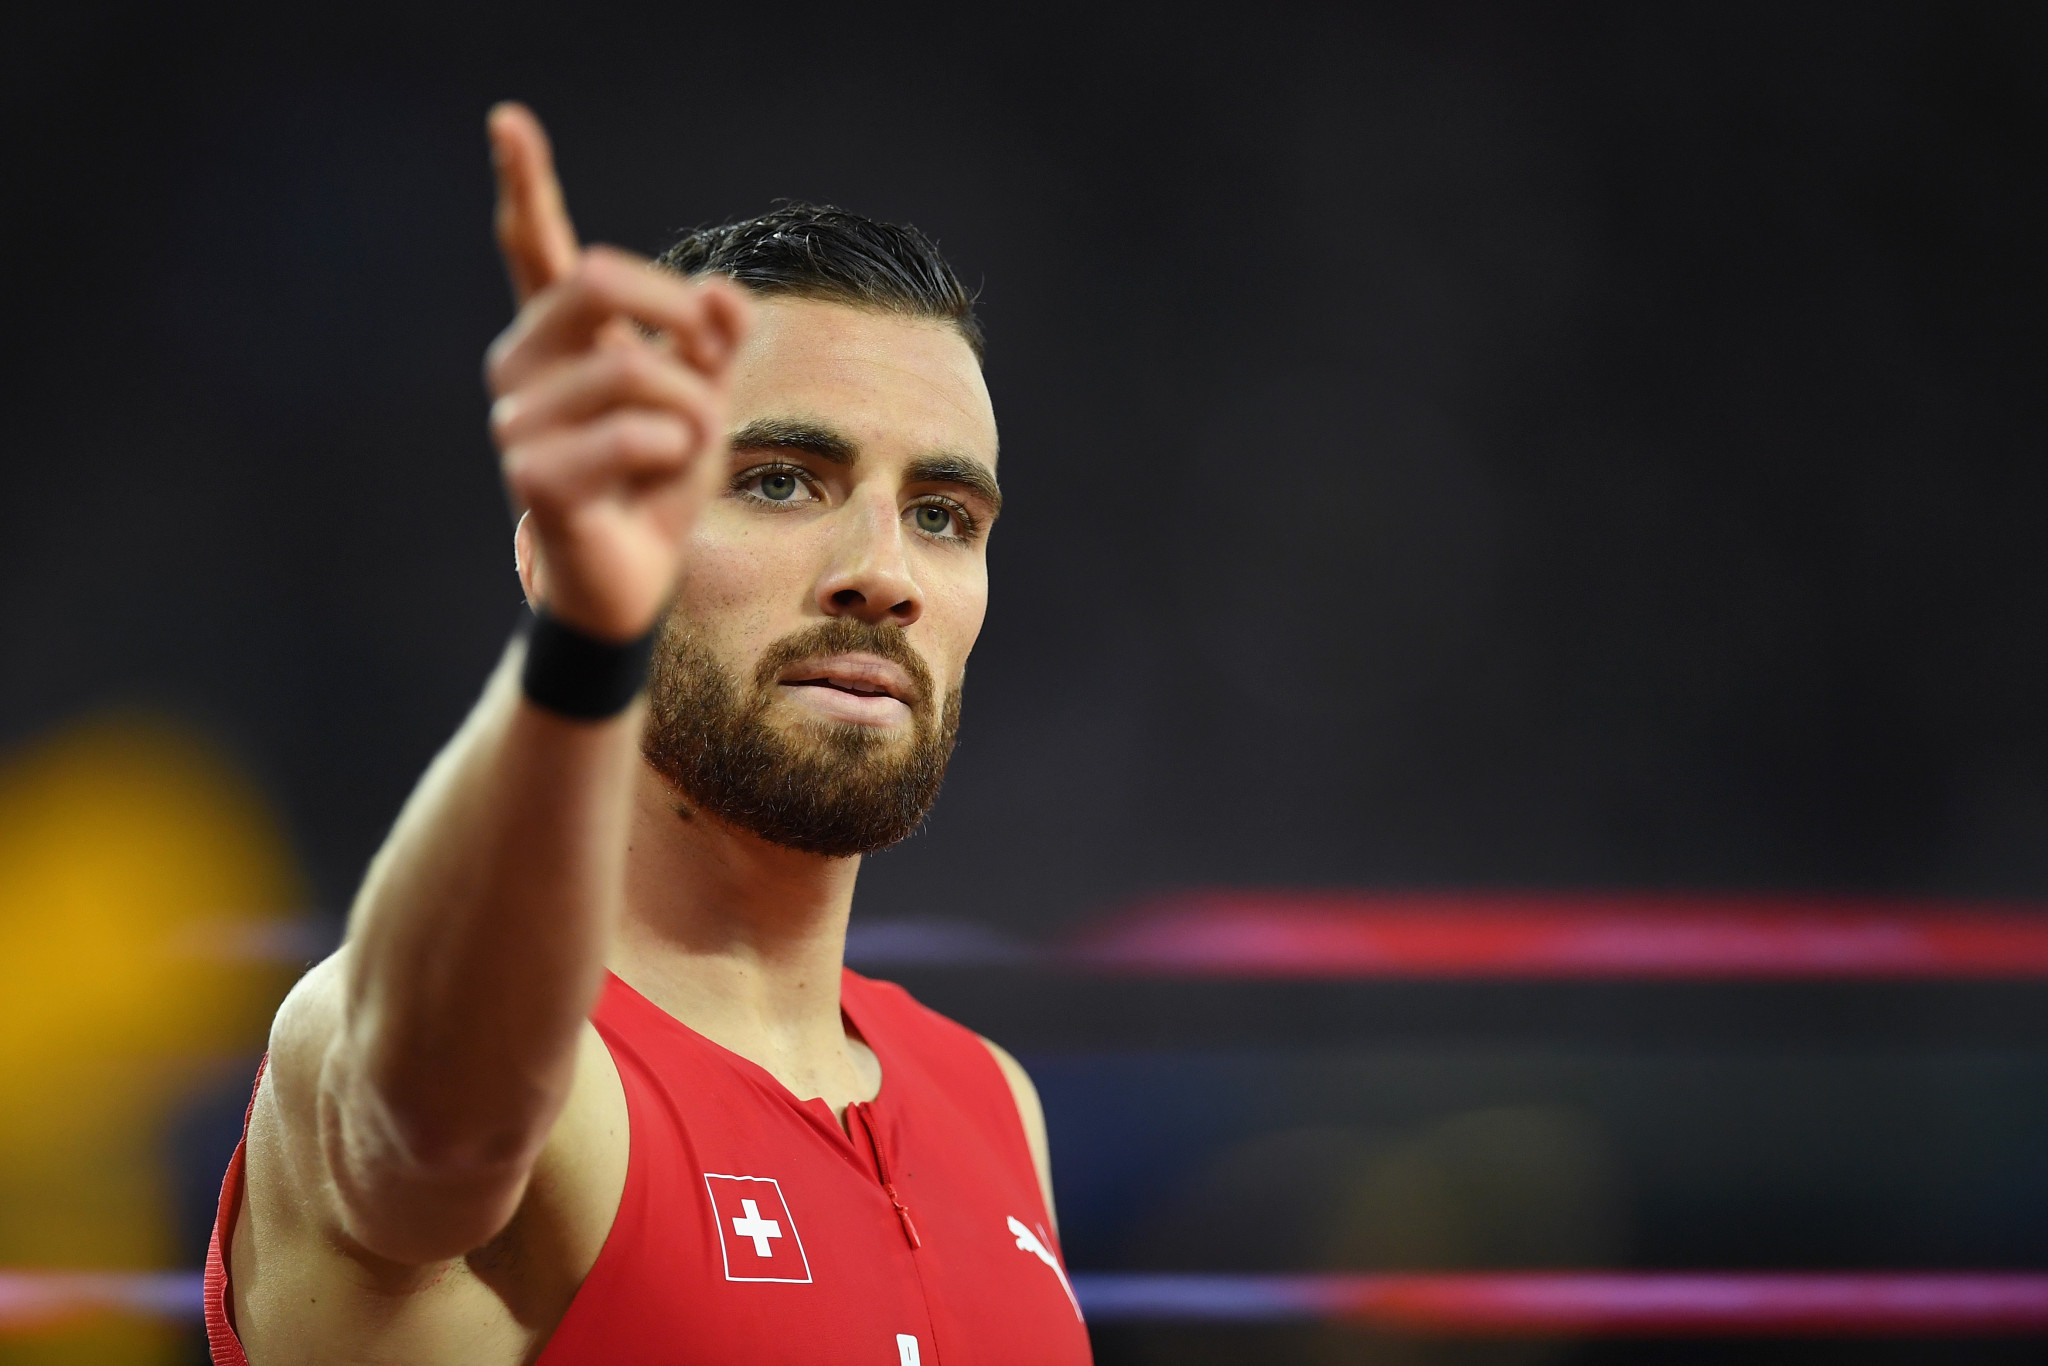 Swiss hurdler Hussein ruled out of Tokyo 2020 after receiving nine-month ban